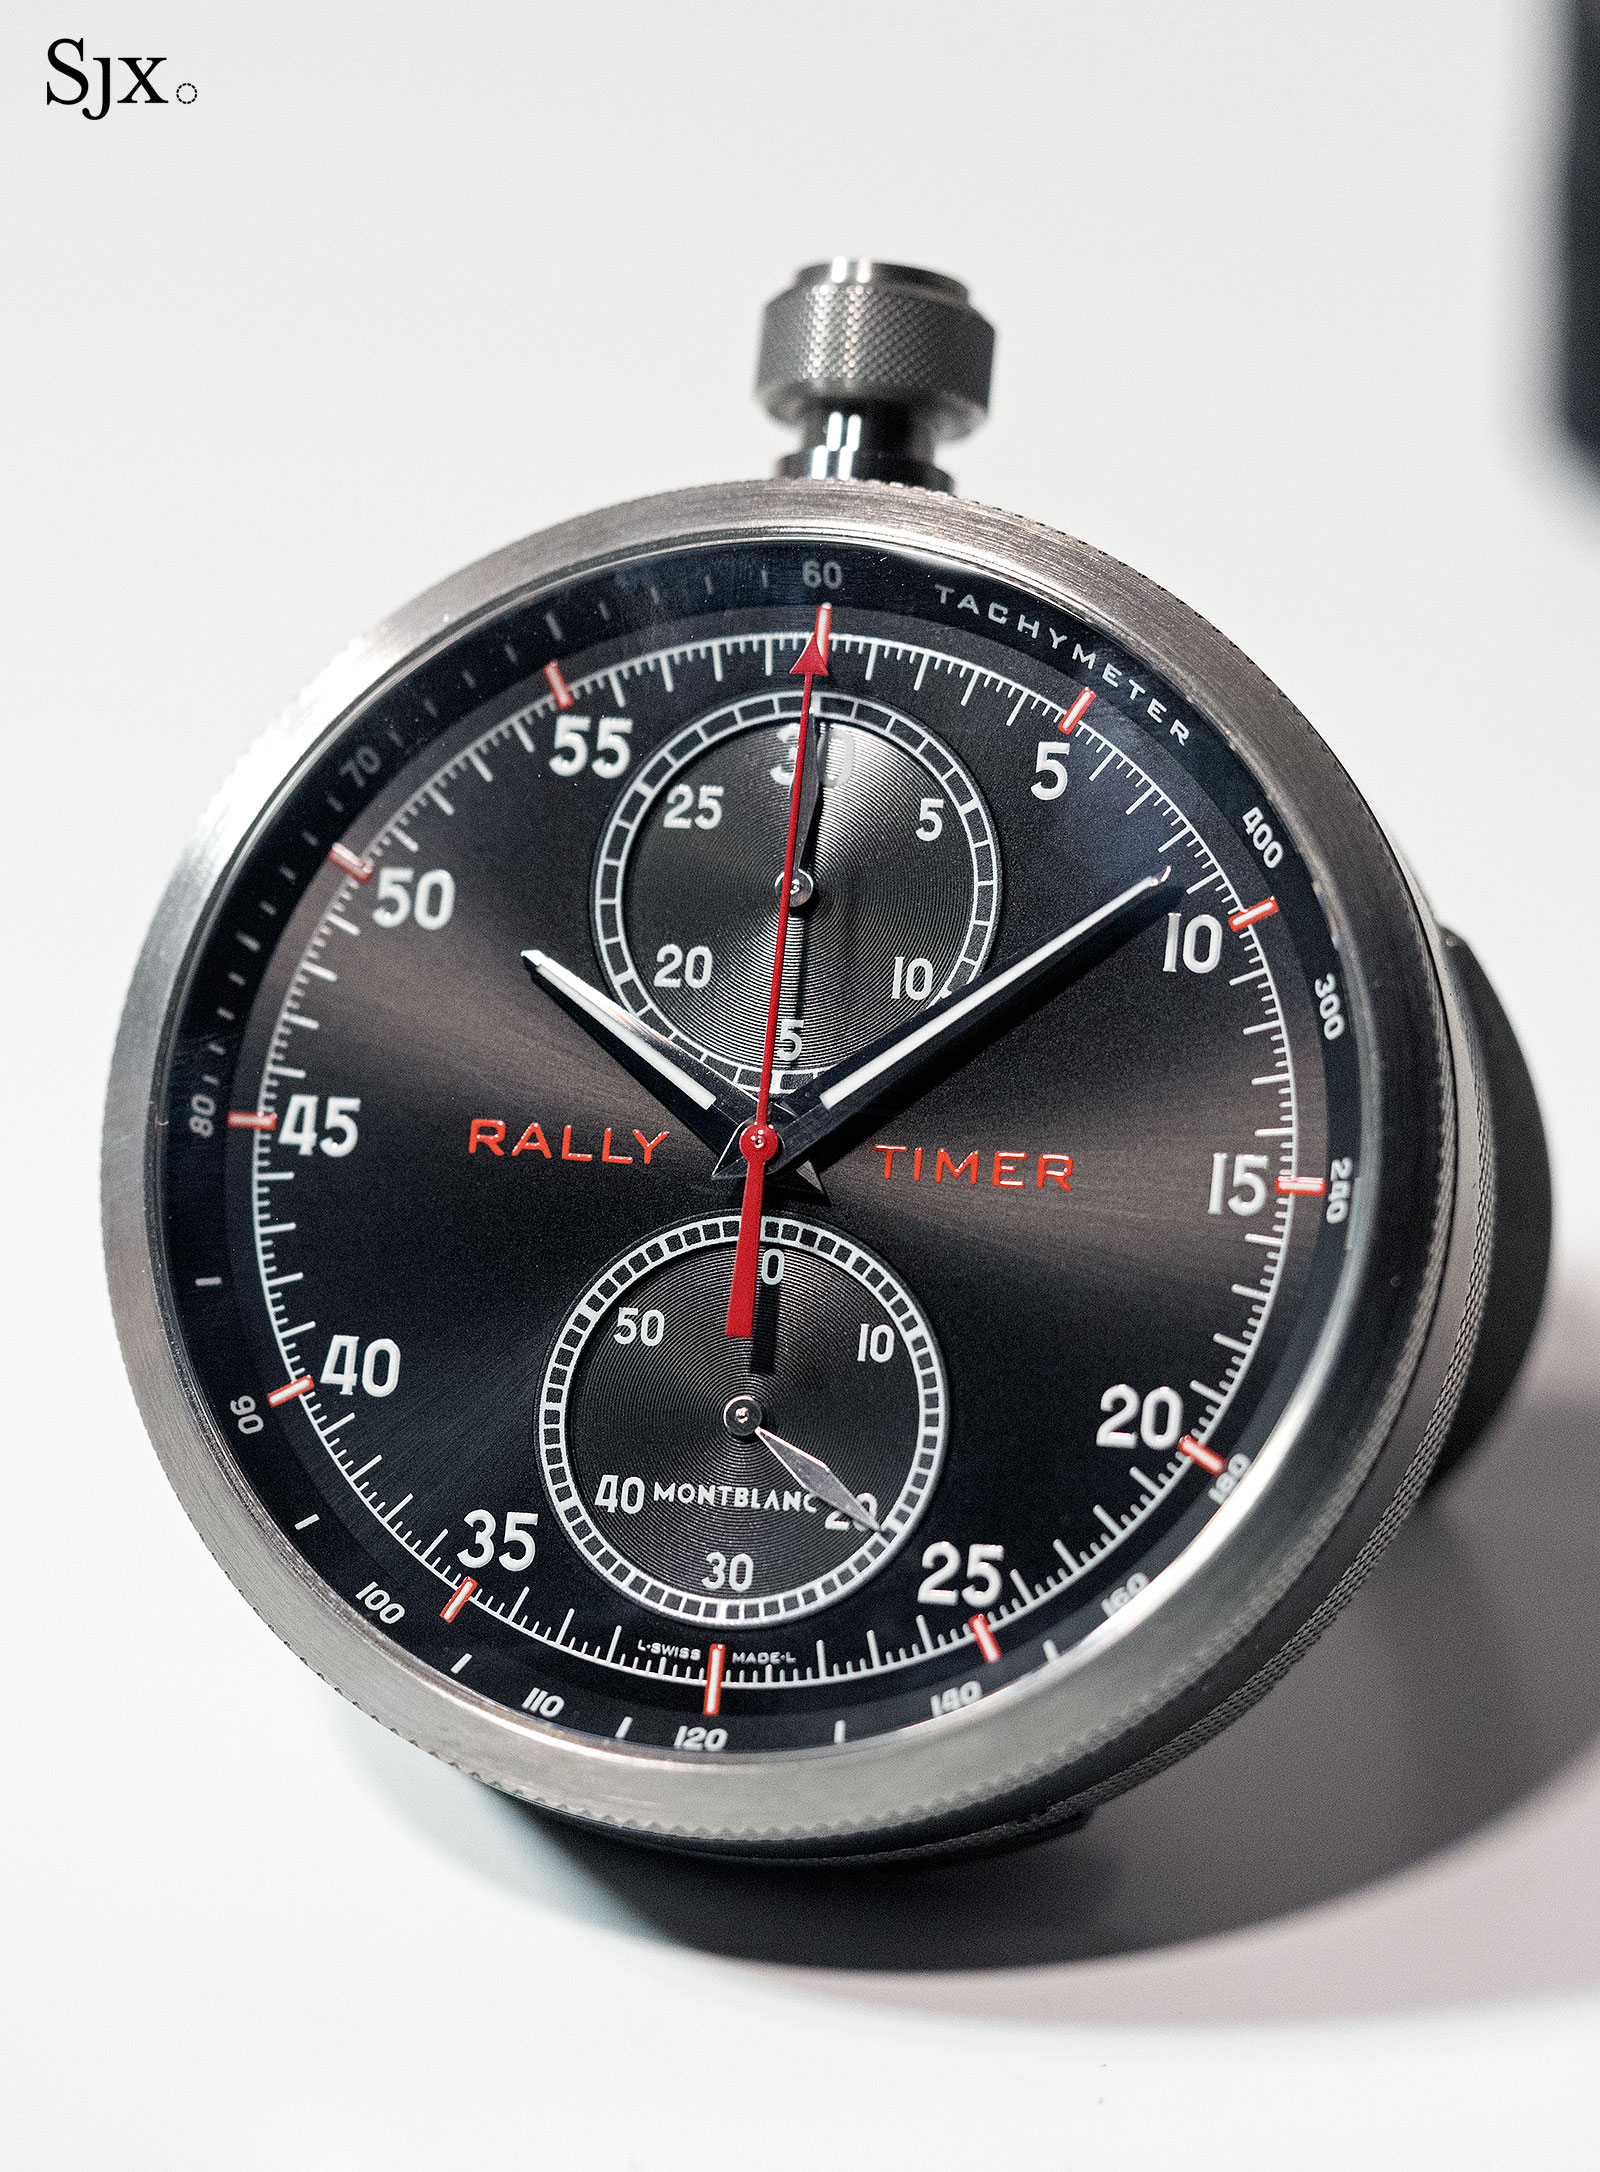 Montblanc TimeWalker Chronograph Rally Timer Counter-3